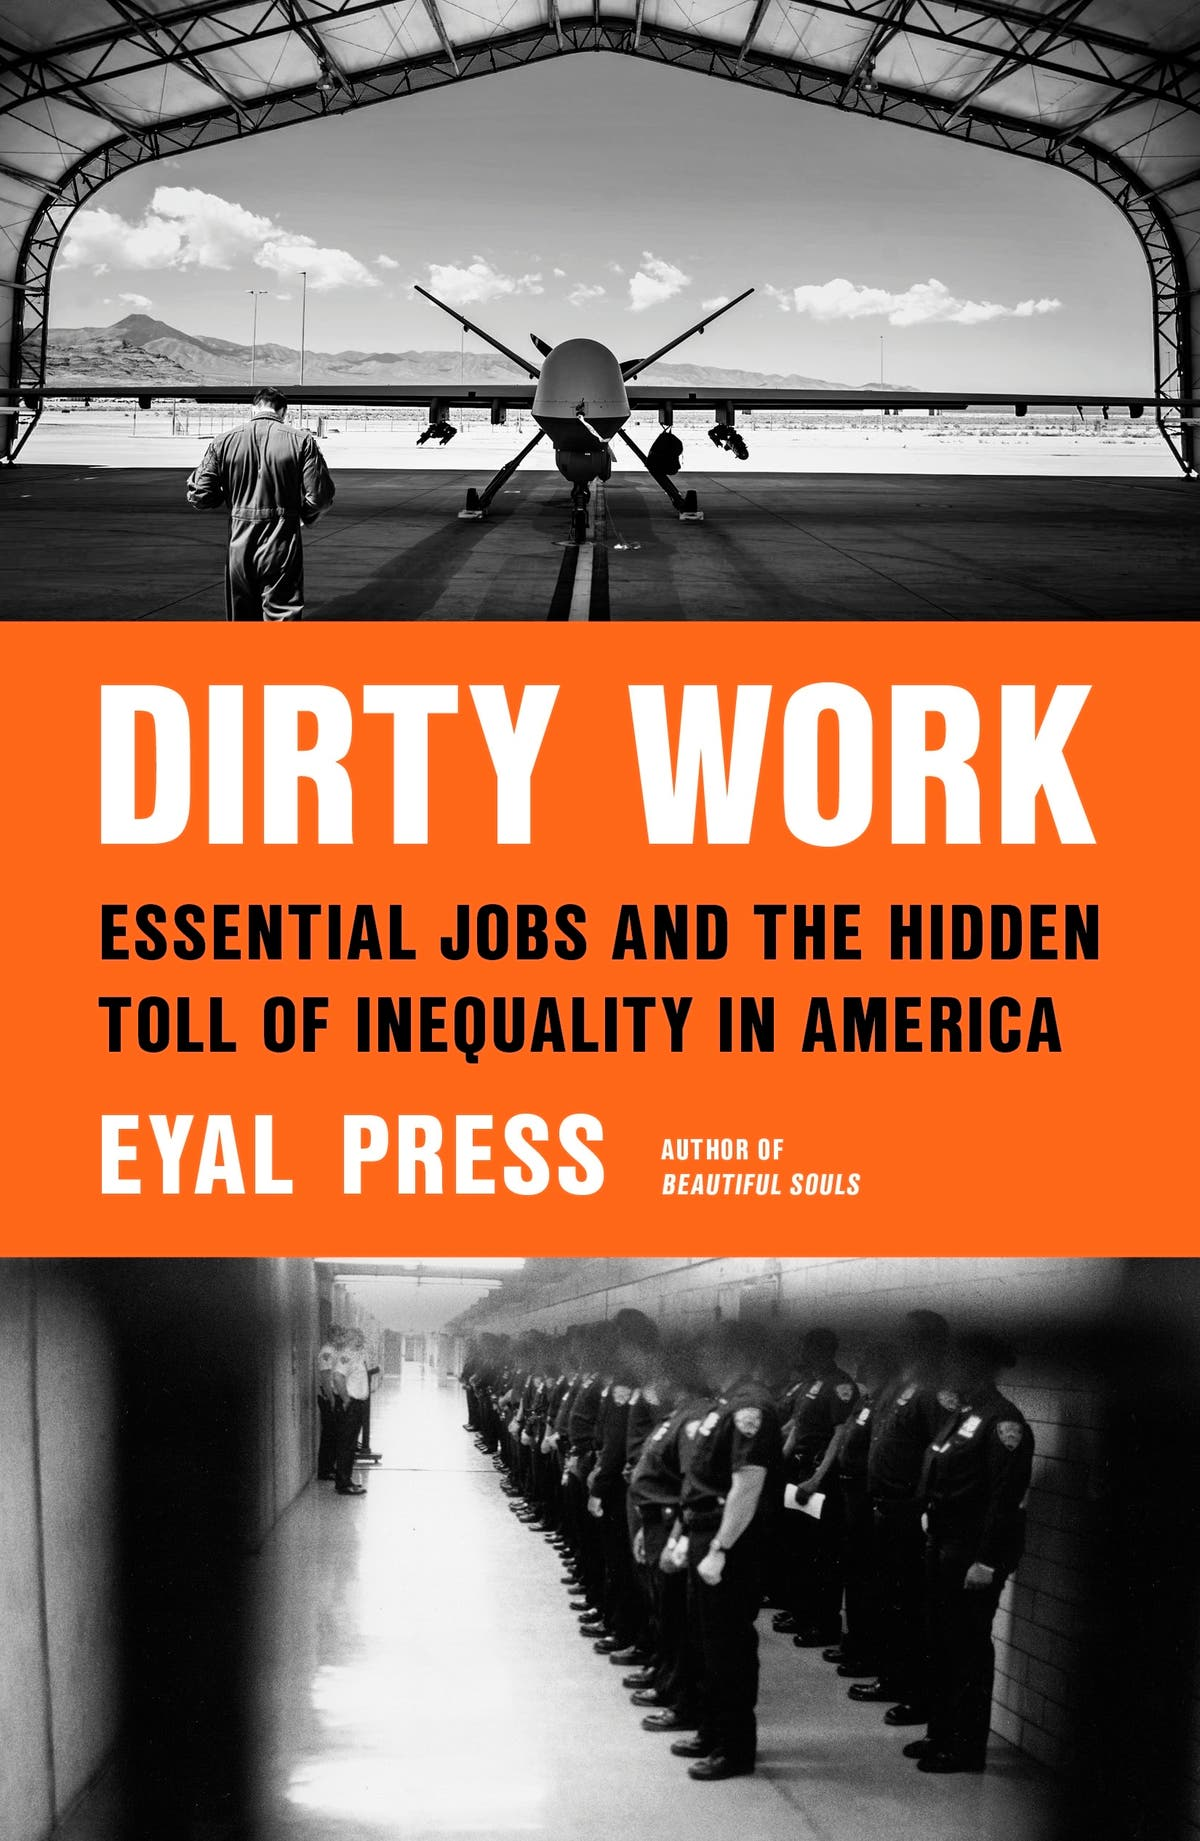 Análise: 'Dirty Work' argues that unpleasant jobs hurt us all